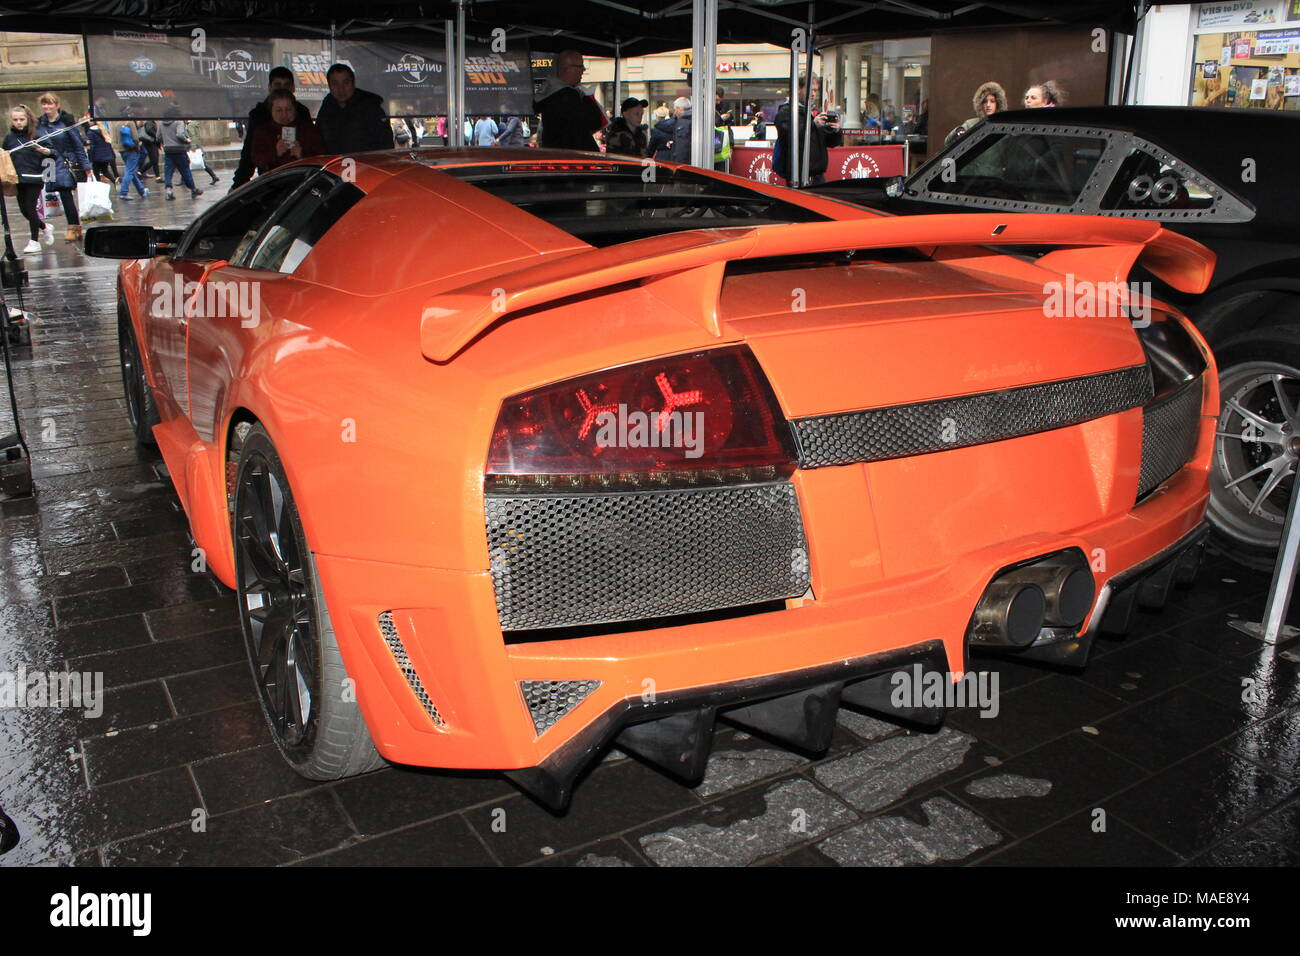 The Fate Of The Furious Car Stock Photos The Fate Of The Furious